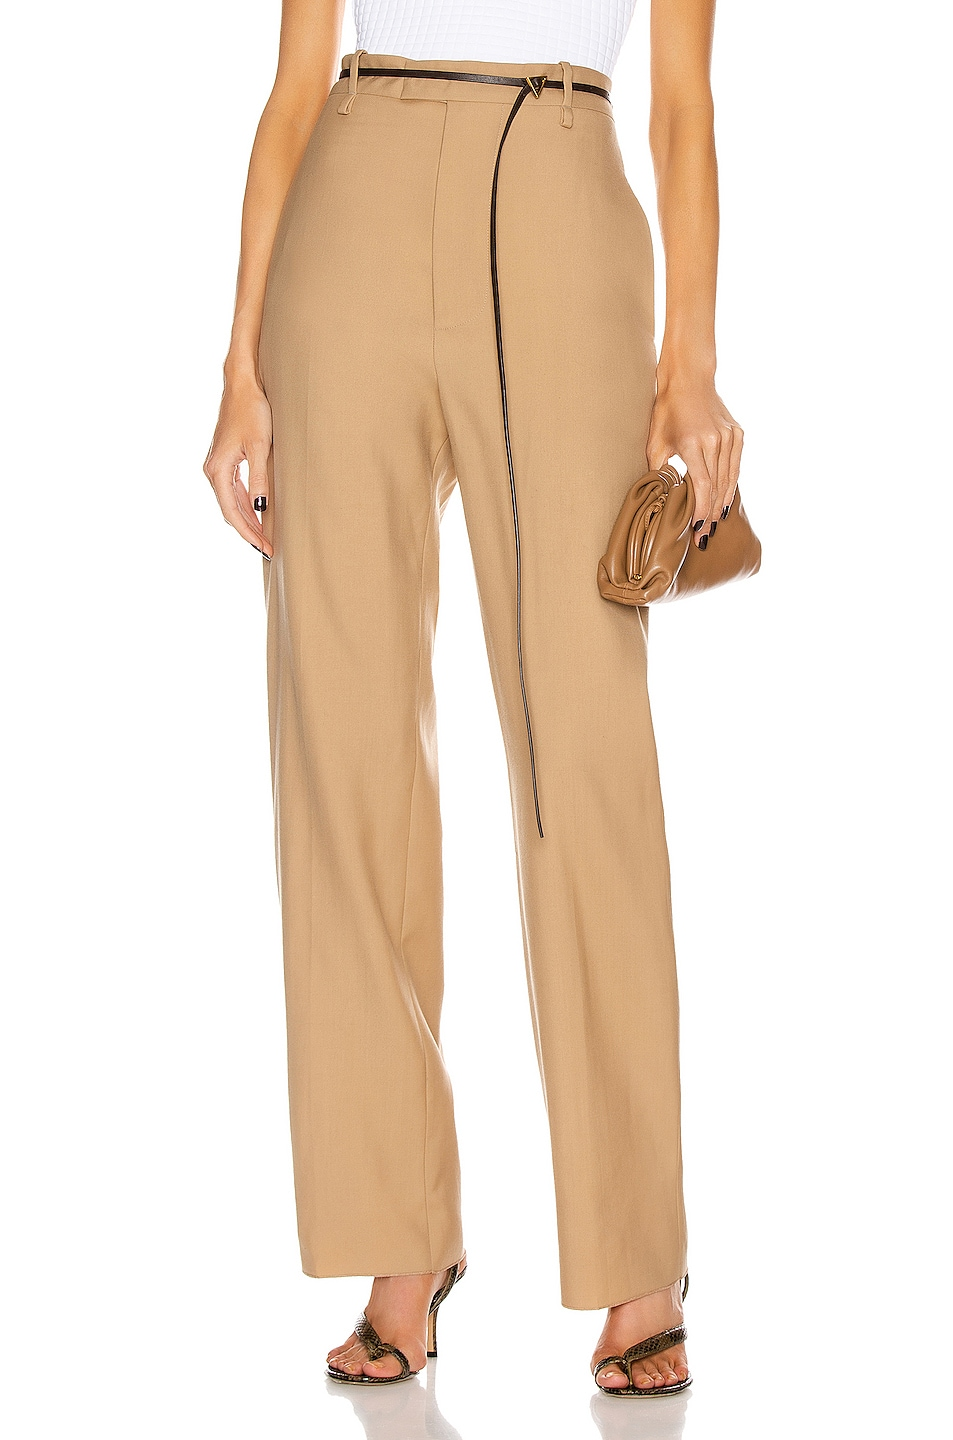 Image 1 of Bottega Veneta Tailored Pant in Camel